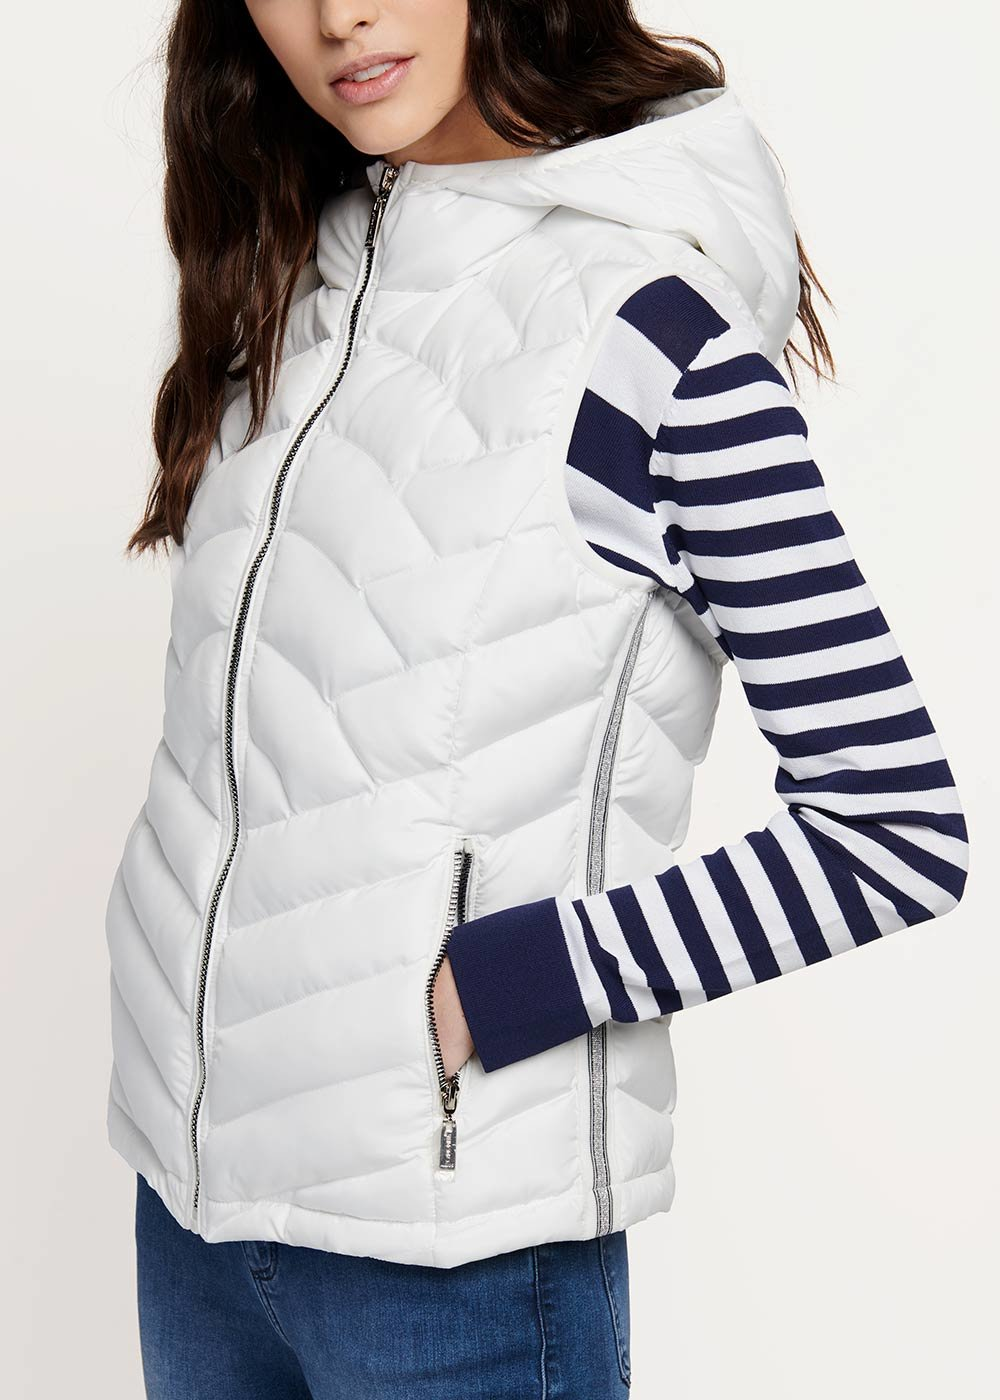 Gavin padded jacket without sleeves - White - Woman